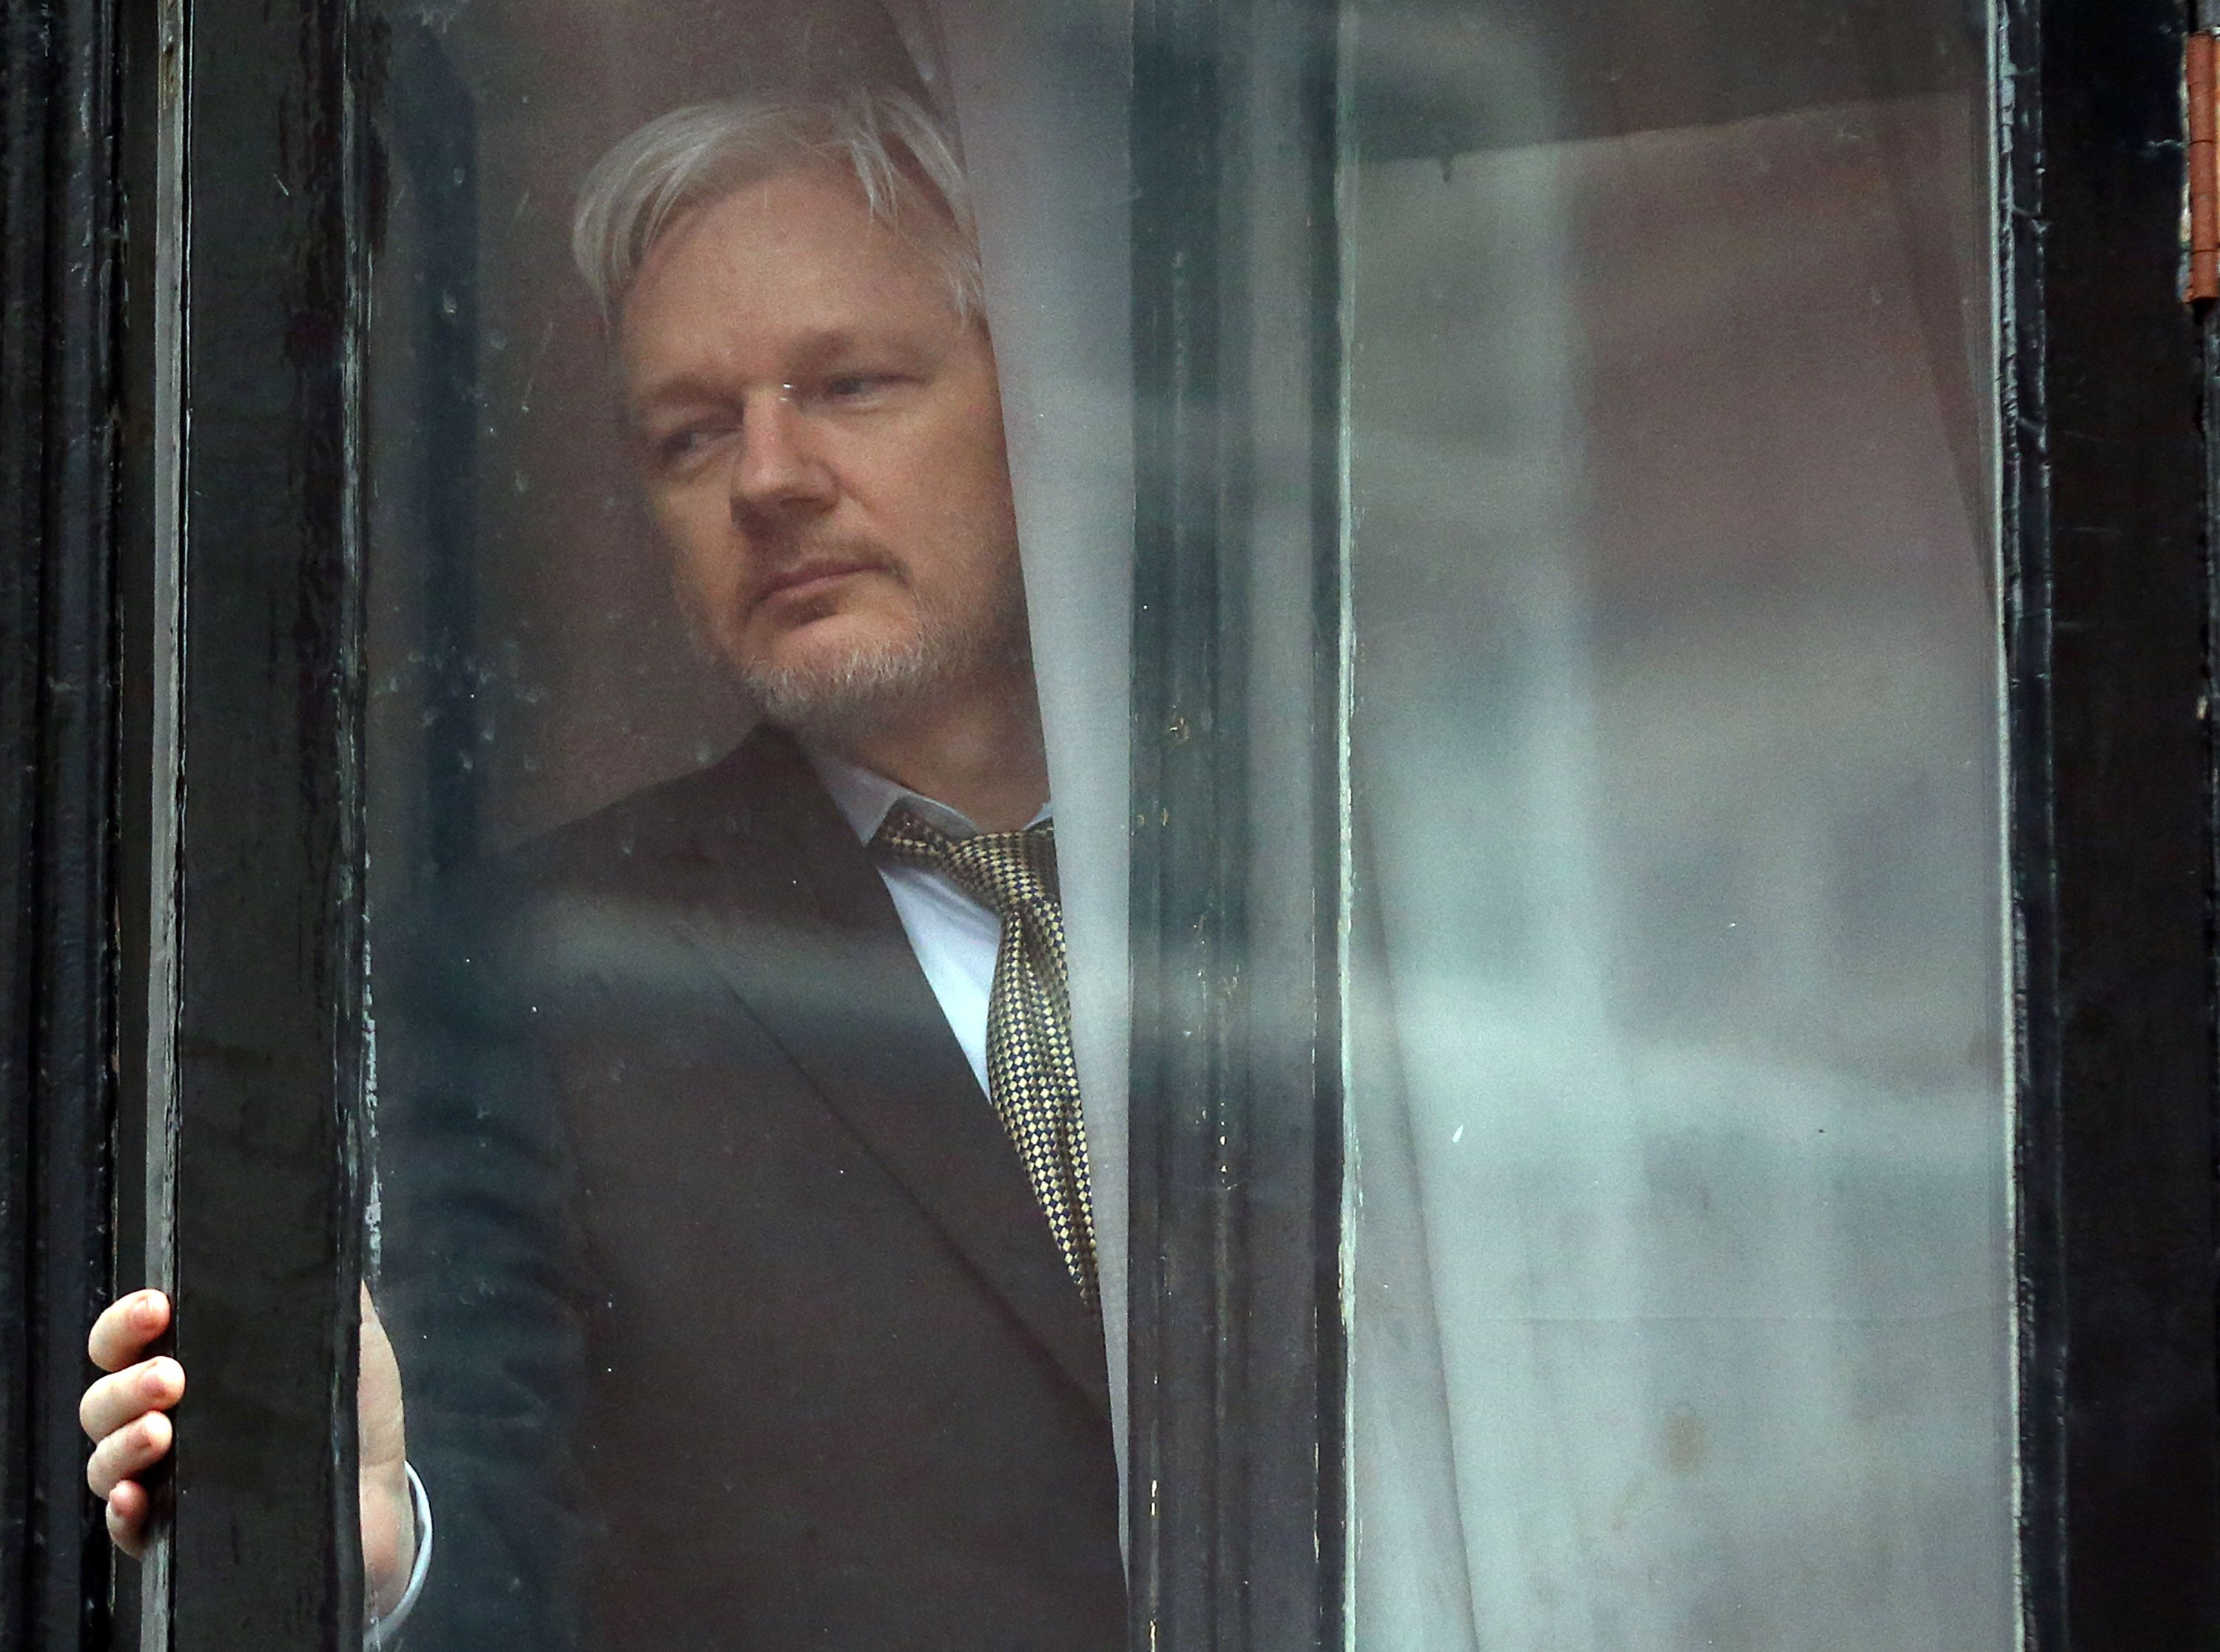 Vivere da recluso per 7 anni: i video di Assange